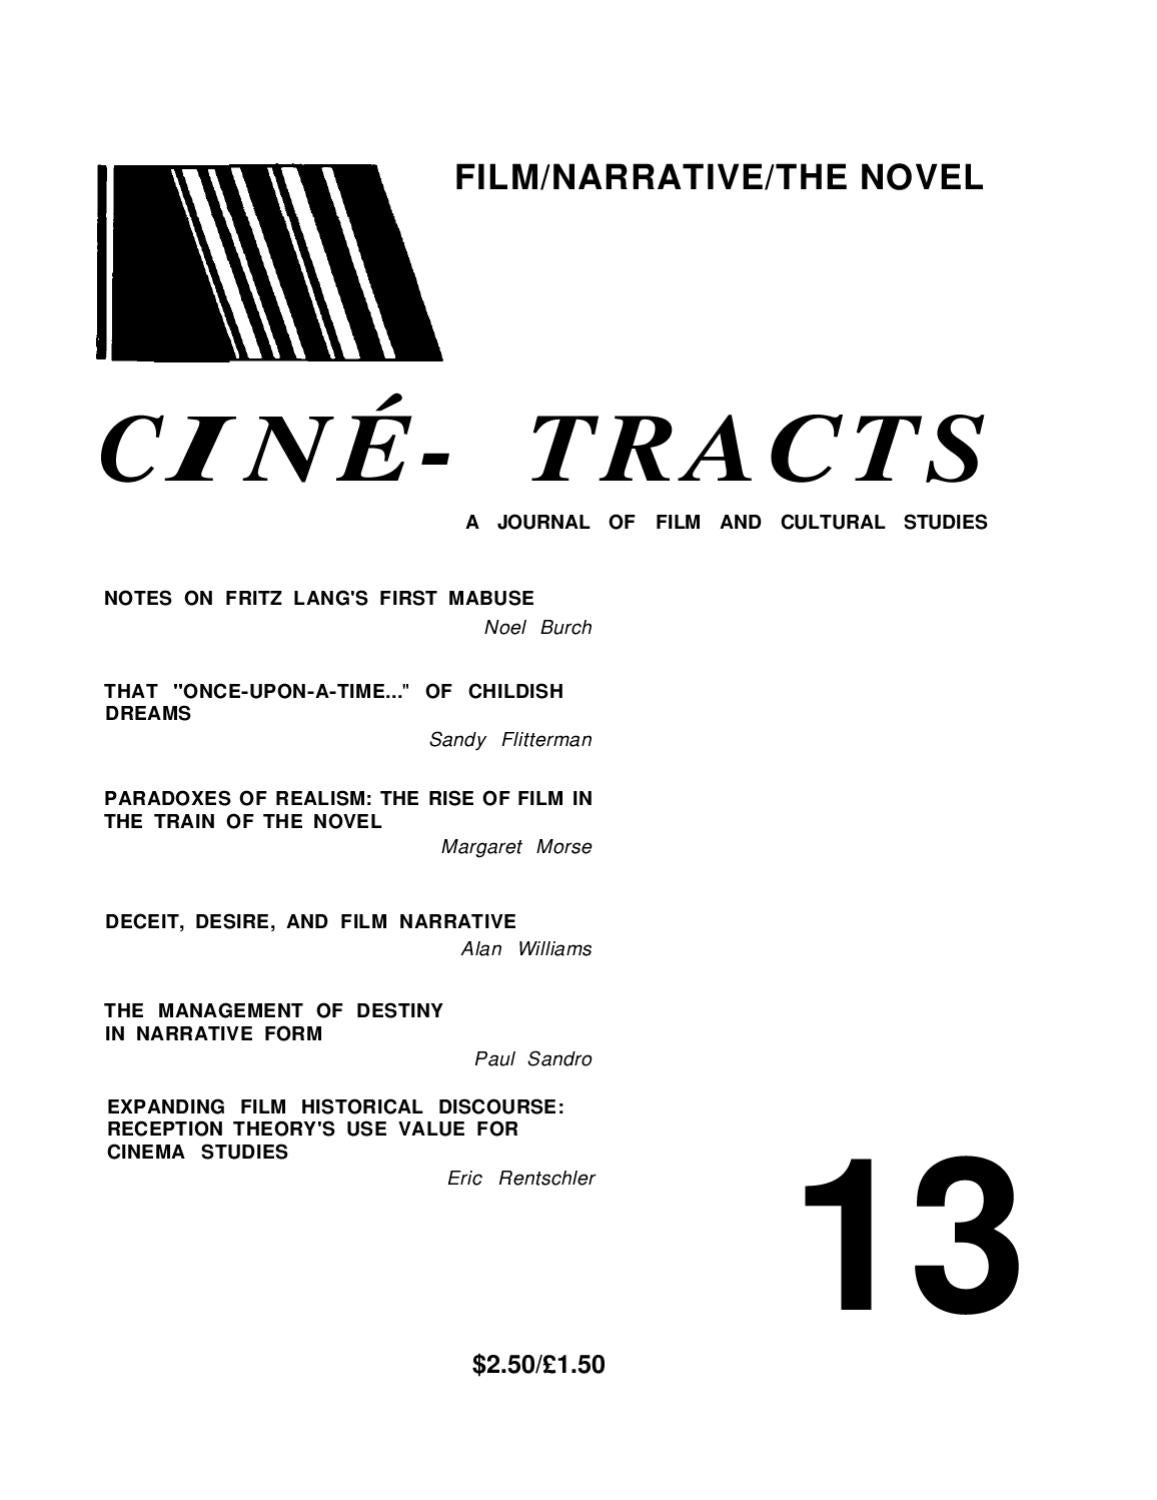 Cine-Tracts Issue 13 by Ron Burnett - issuu